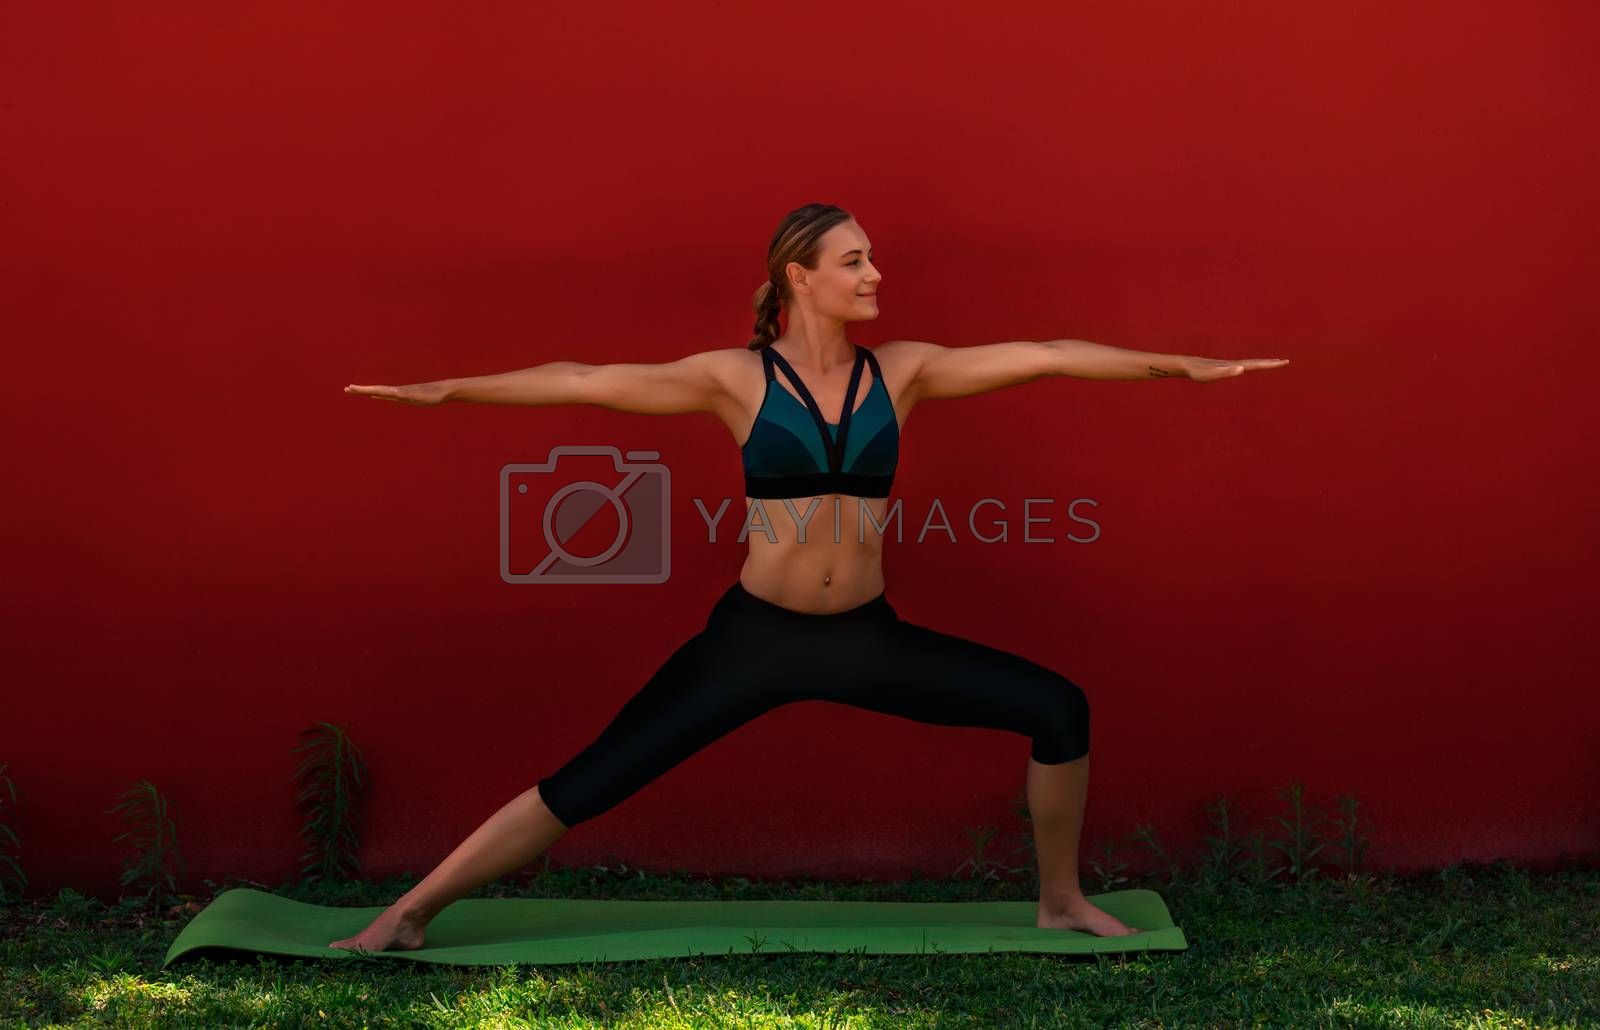 Yoga Outdoors by Anna_Omelchenko